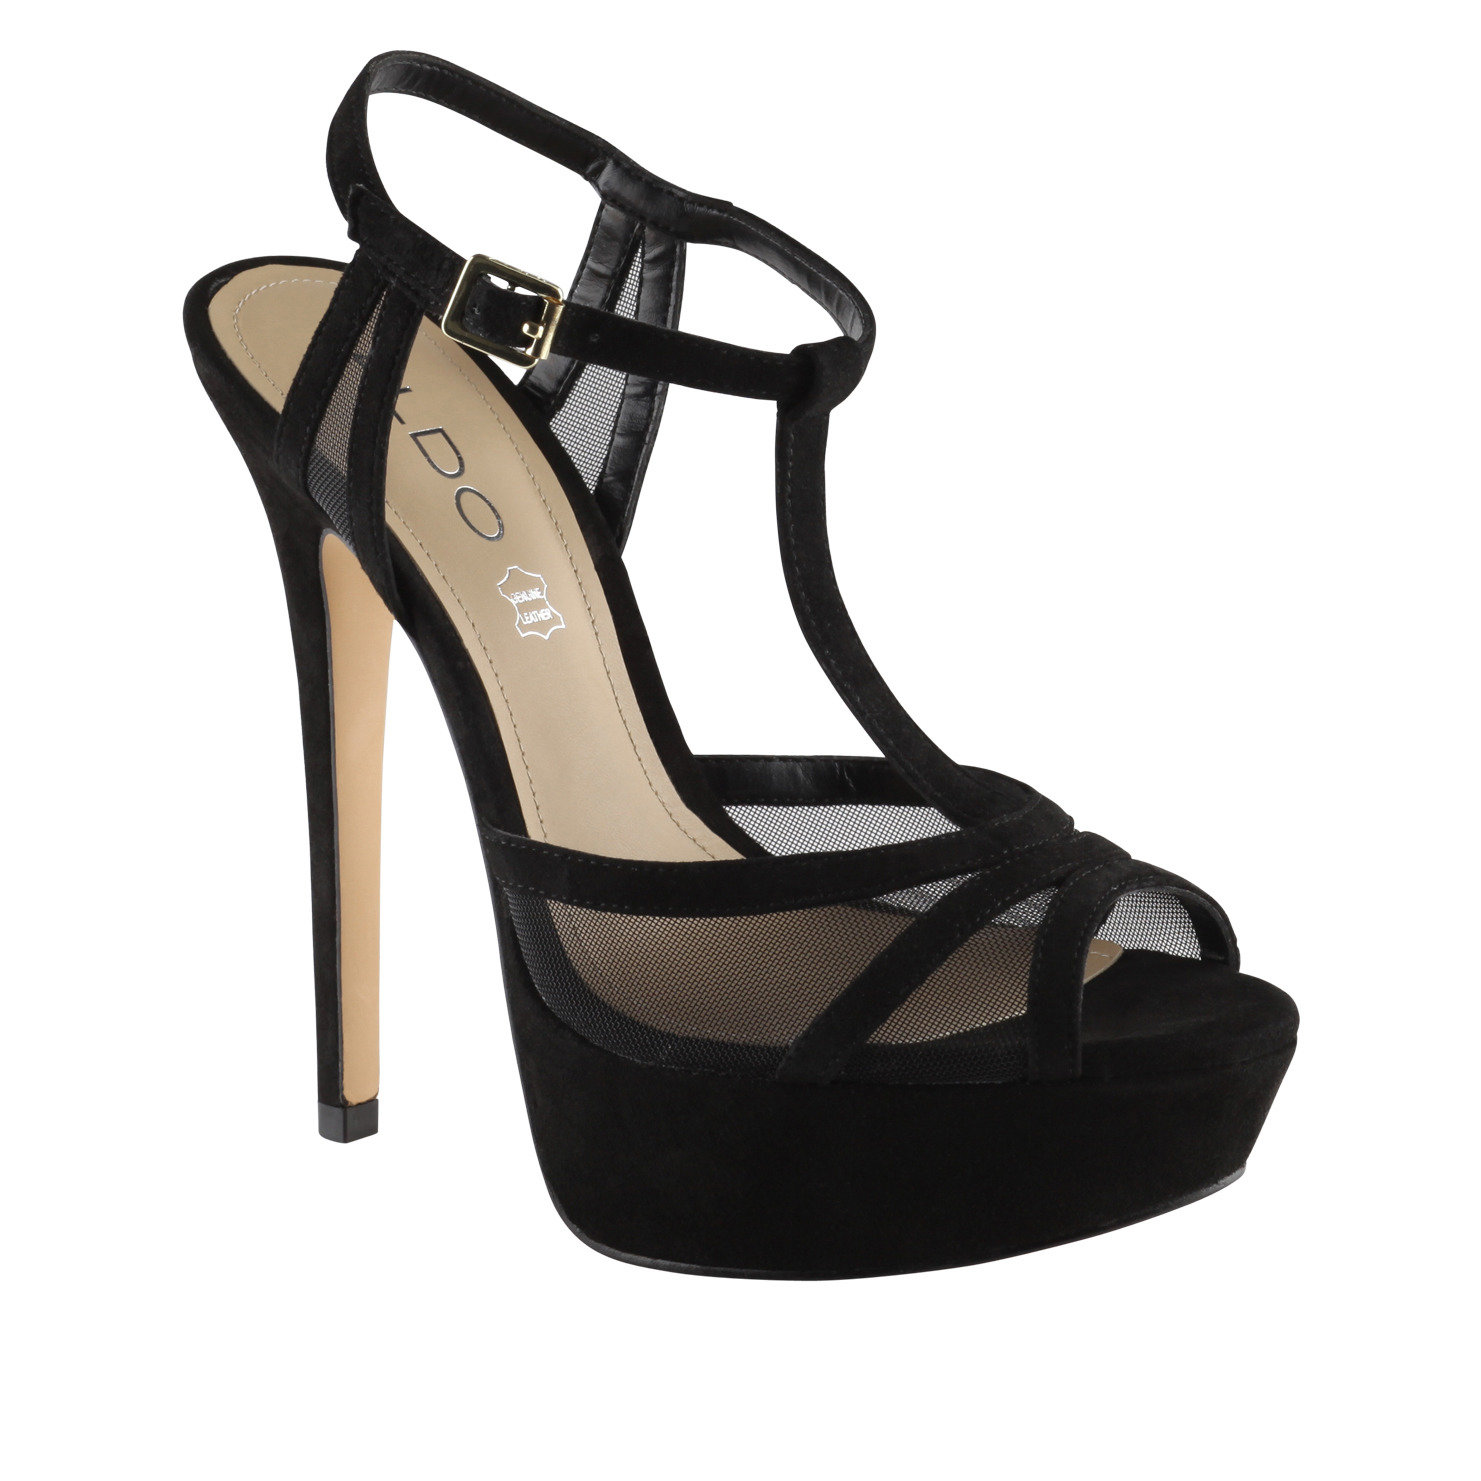 fawnia s high heels sandals for from aldo prom shoes